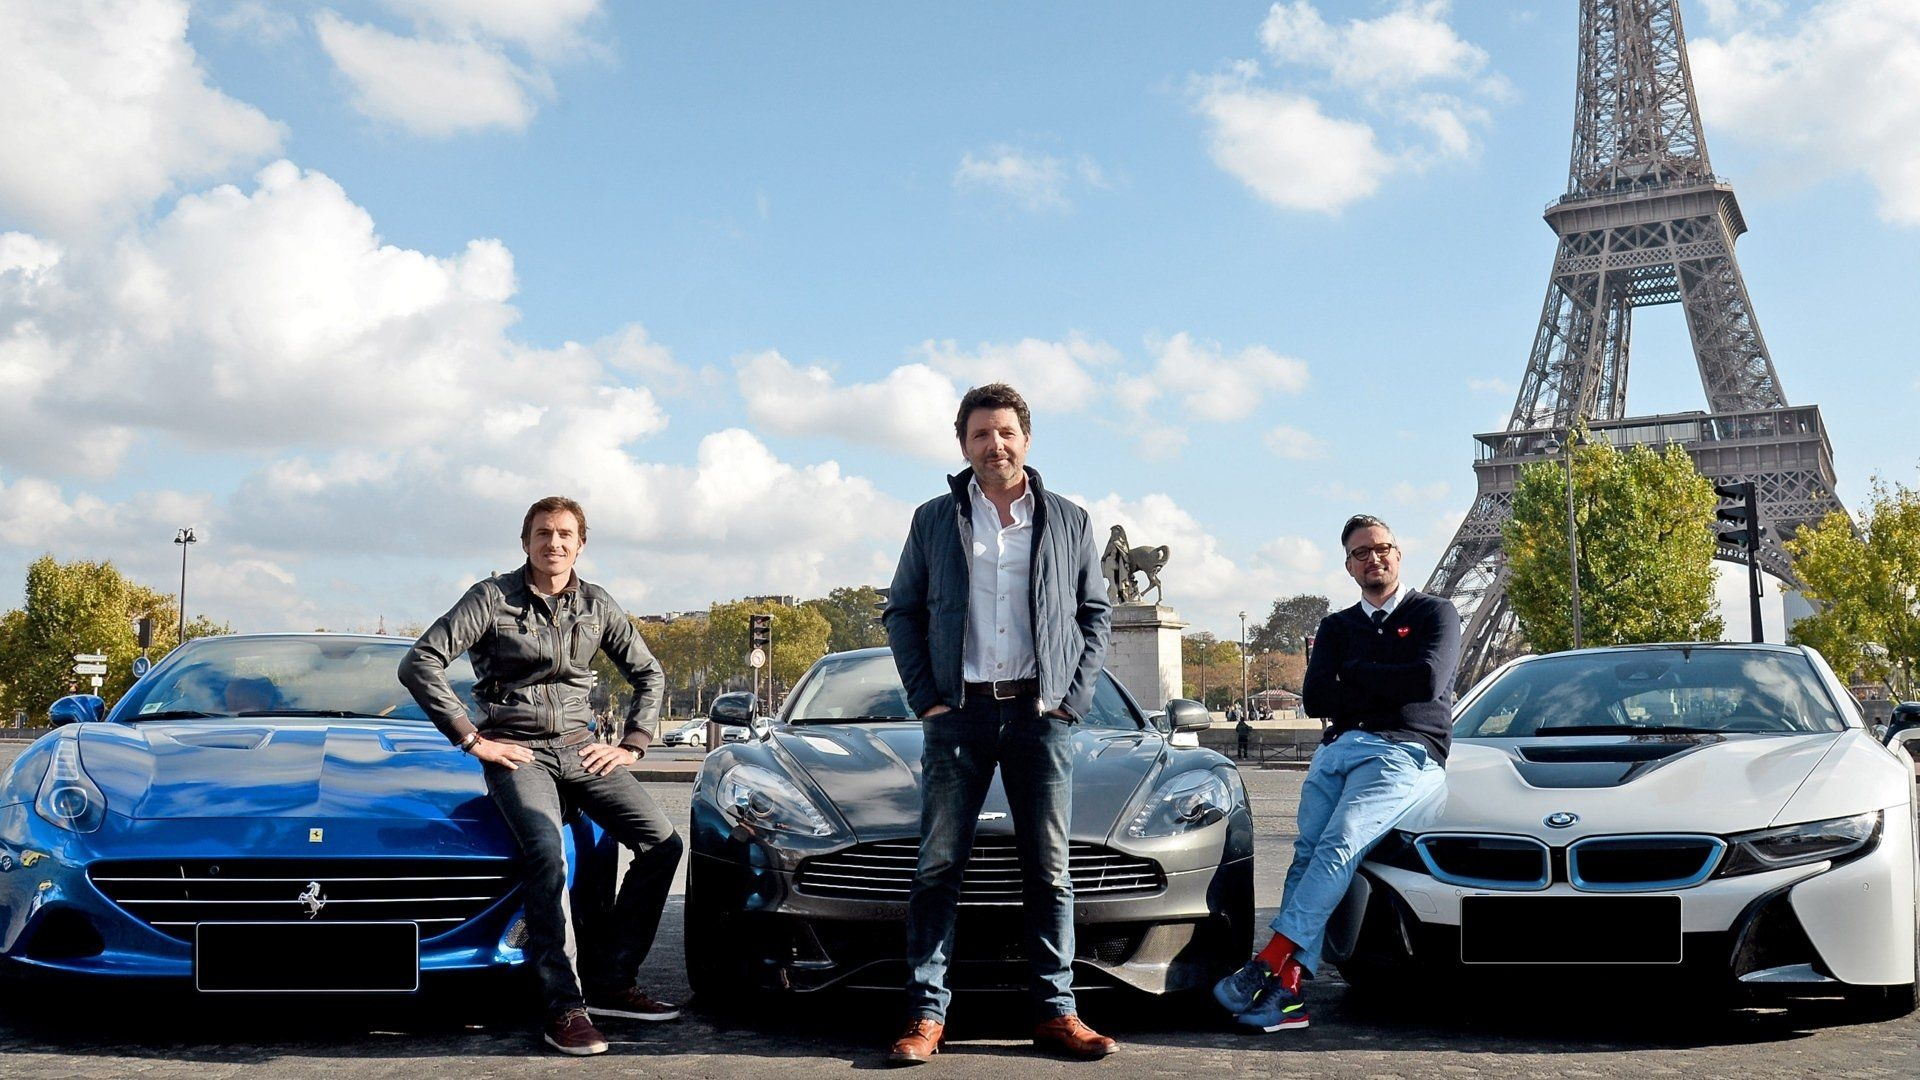 top gear france season 3 where to watch every episode reelgood reelgood